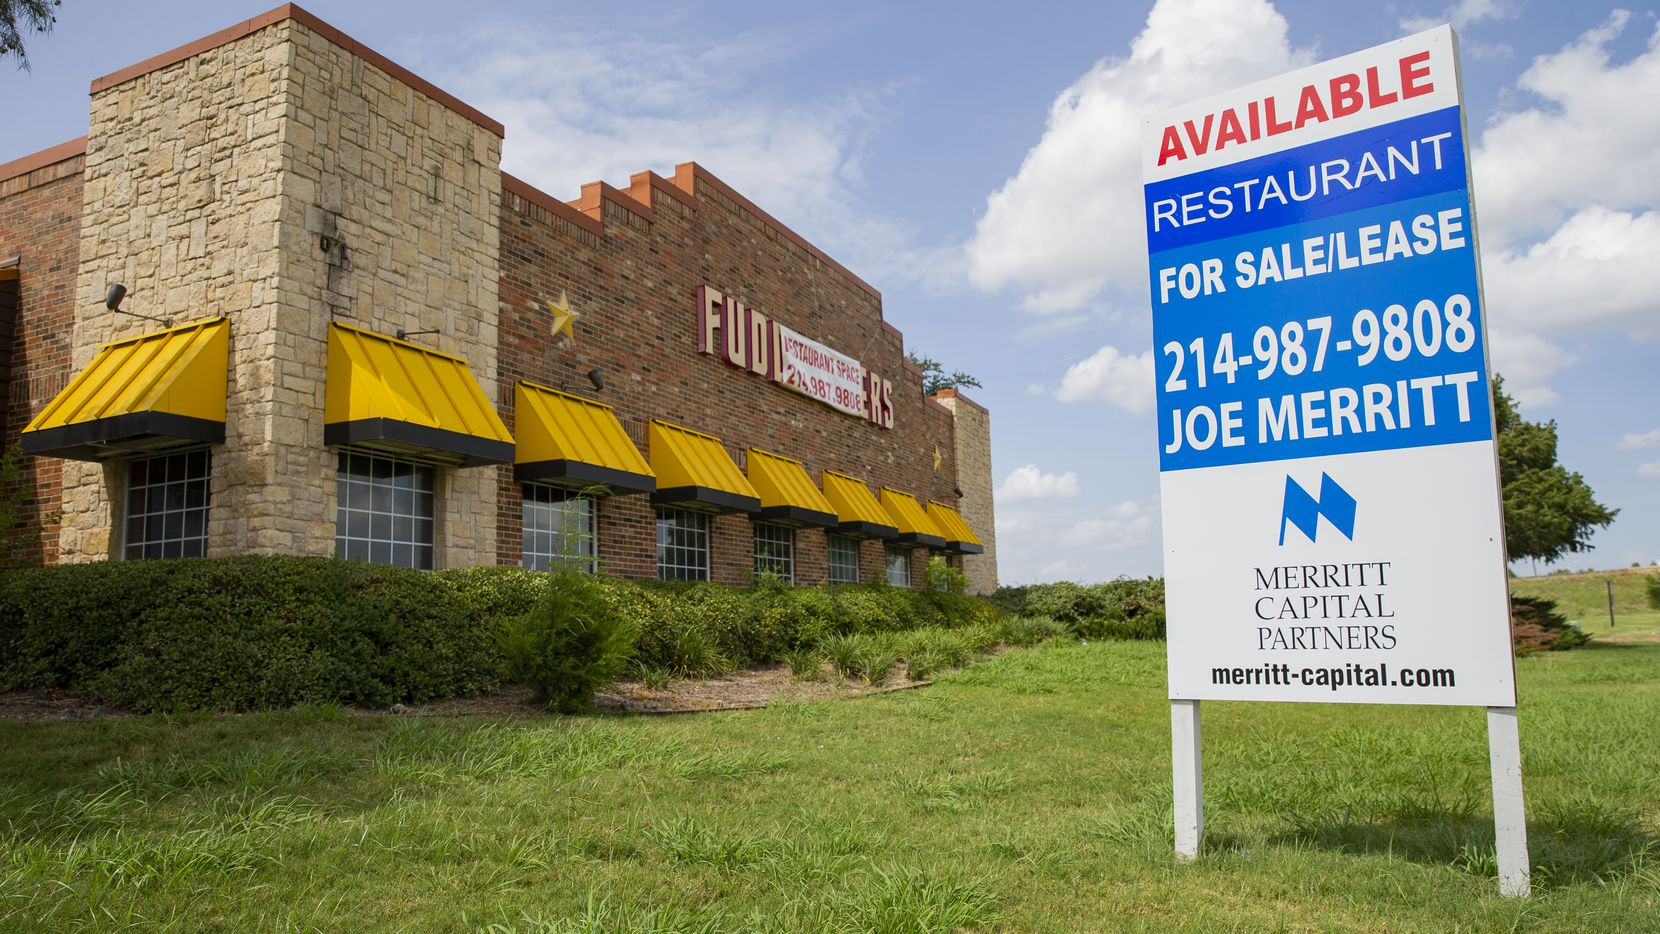 The board of directors for Luby's and Fuddruckers approved a plan to liquidate both restaurants. Some of the restaurants in North Texas have already closed, like the Fuddruckers at 2001 TX-121 in Grapevine.